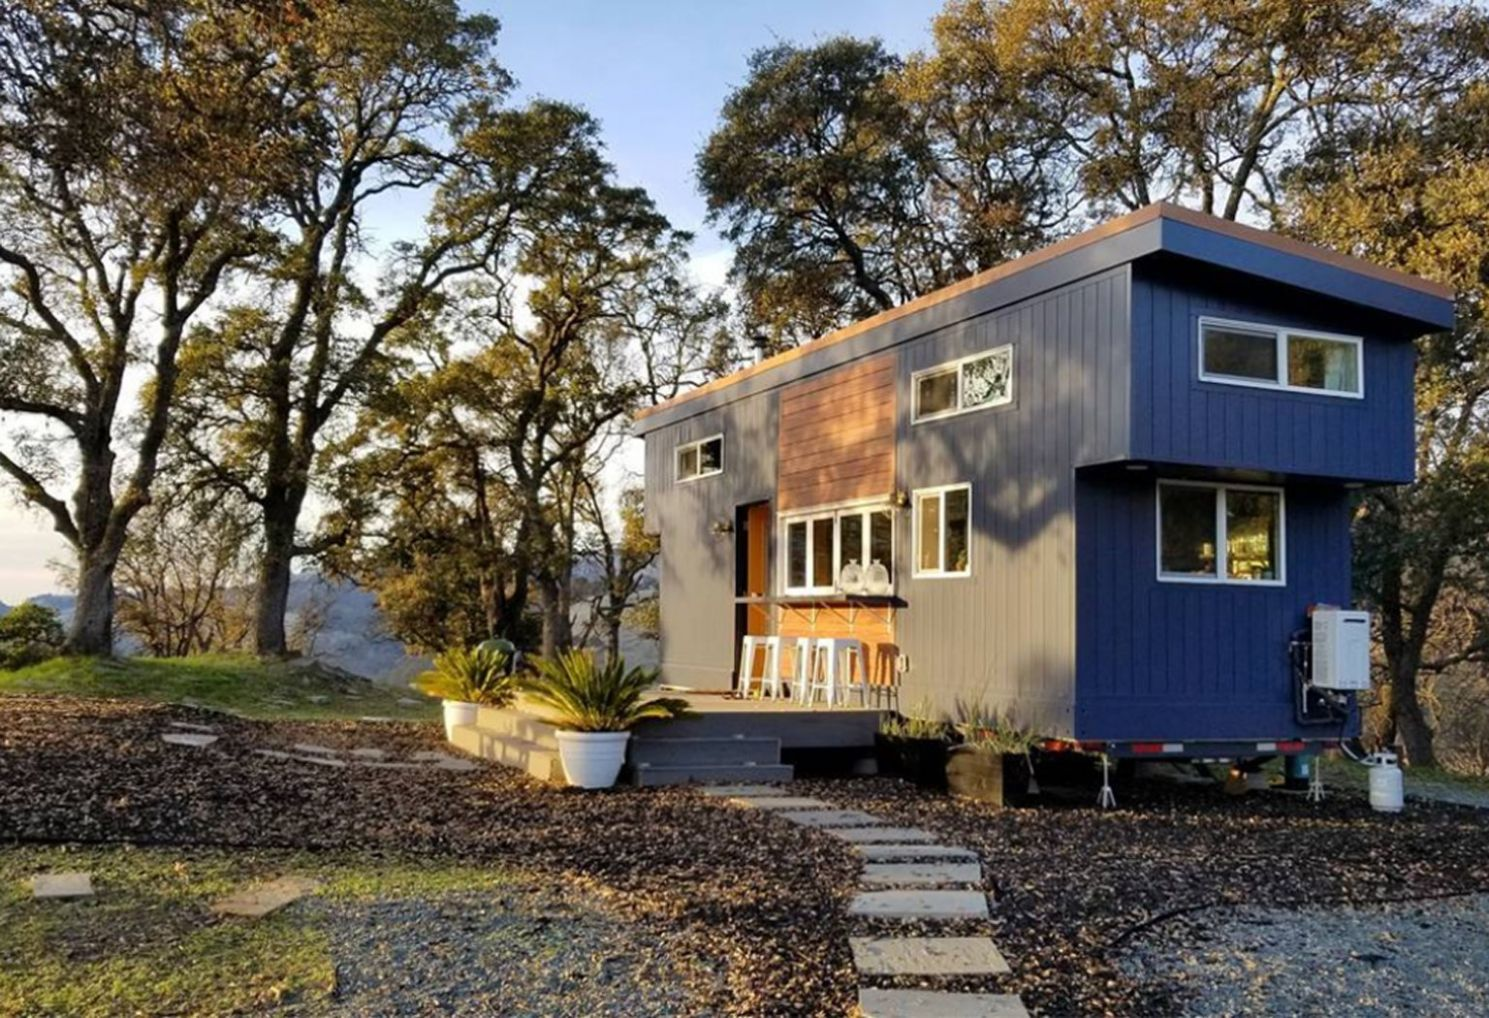 How do I find land for my tiny house? - #AskTheDreamTeam - Dream ...